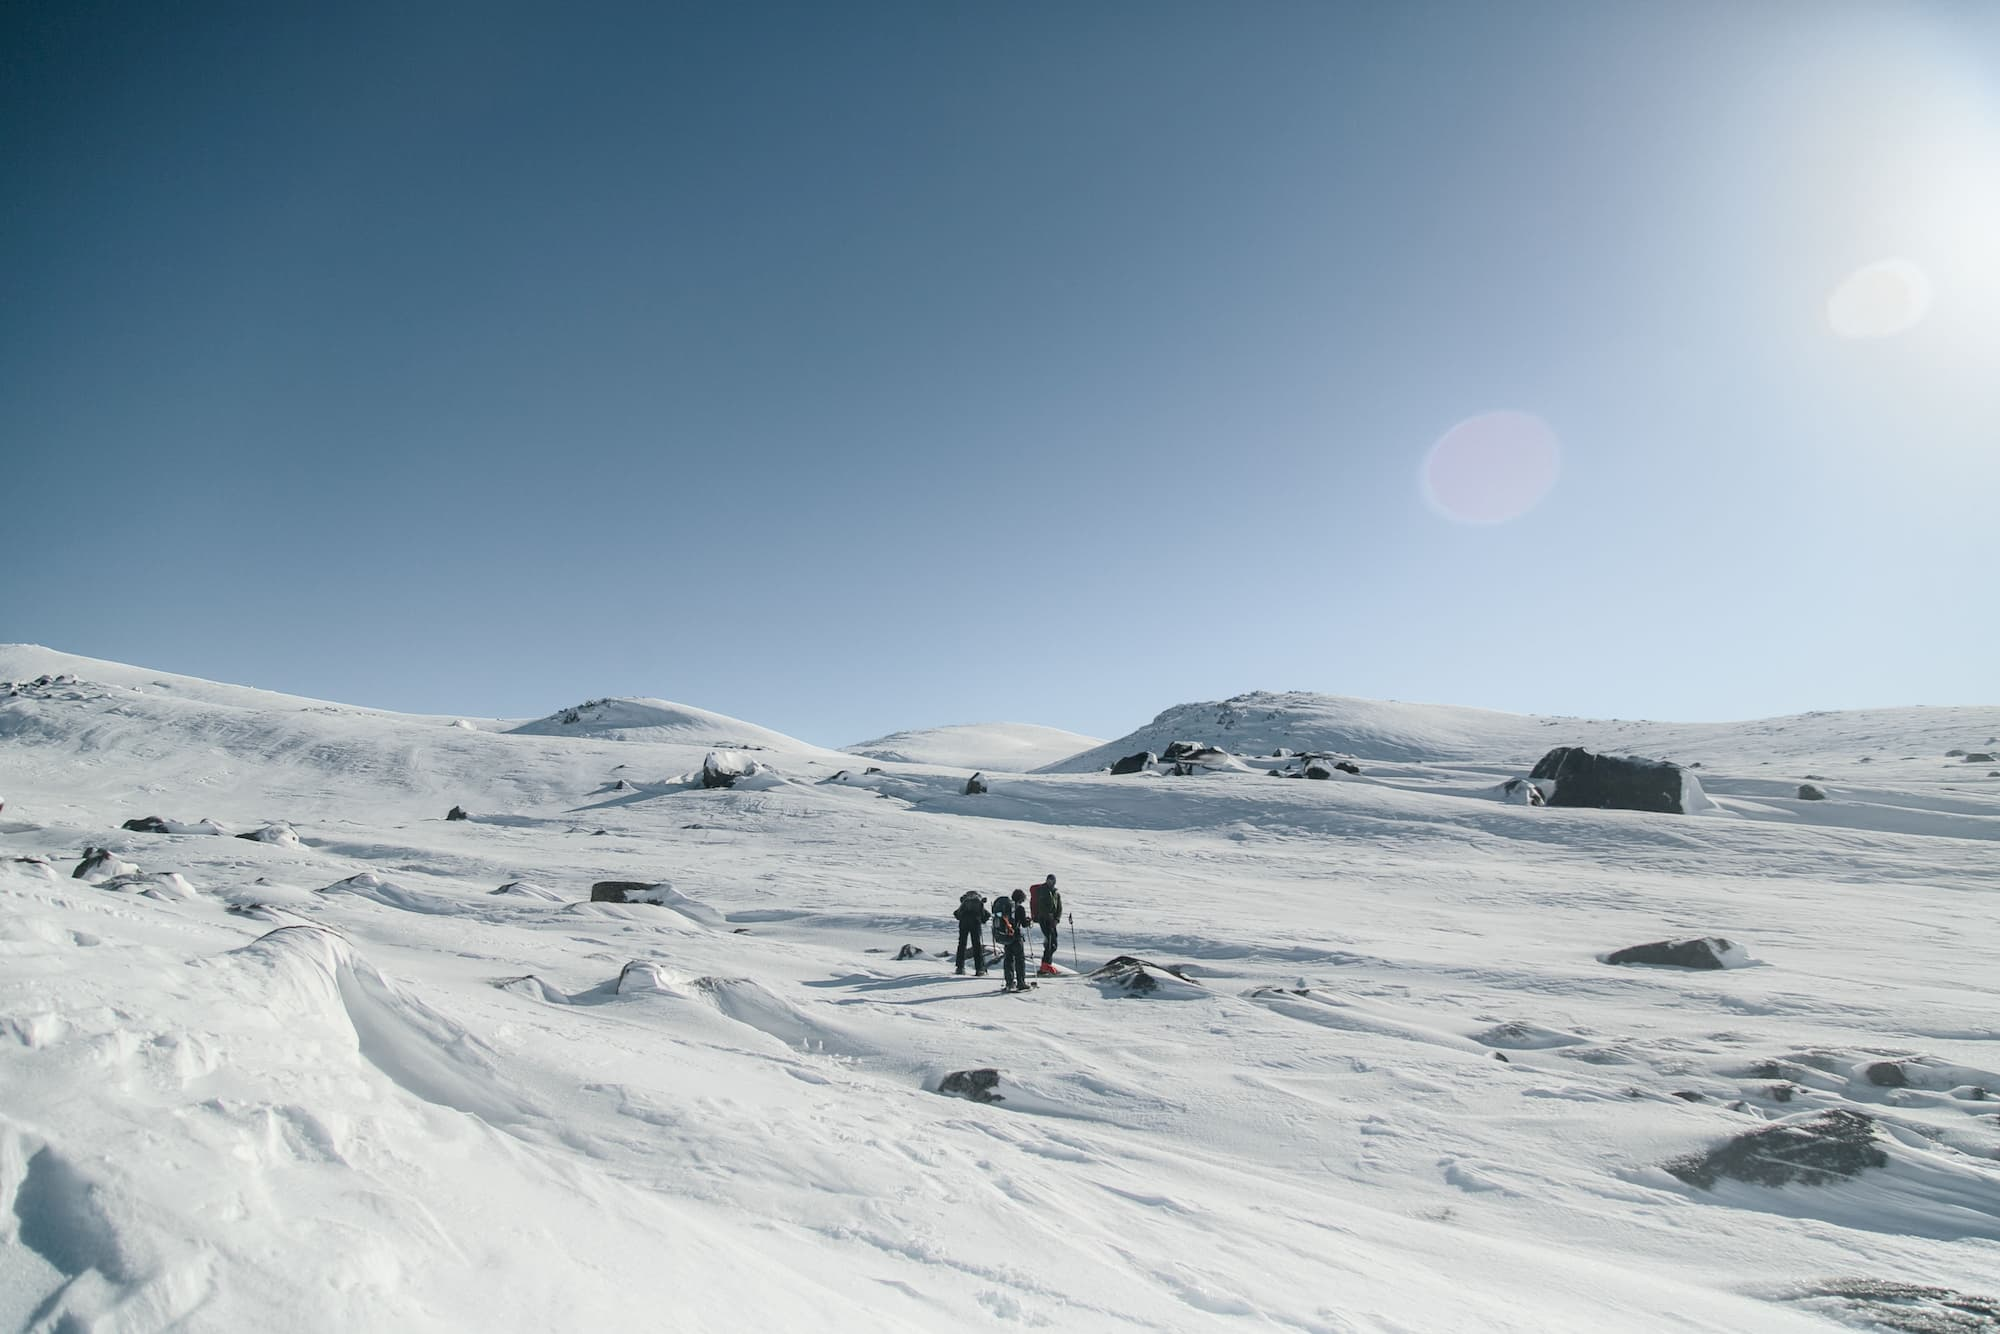 Winter ascent of Mount Kosciuszko